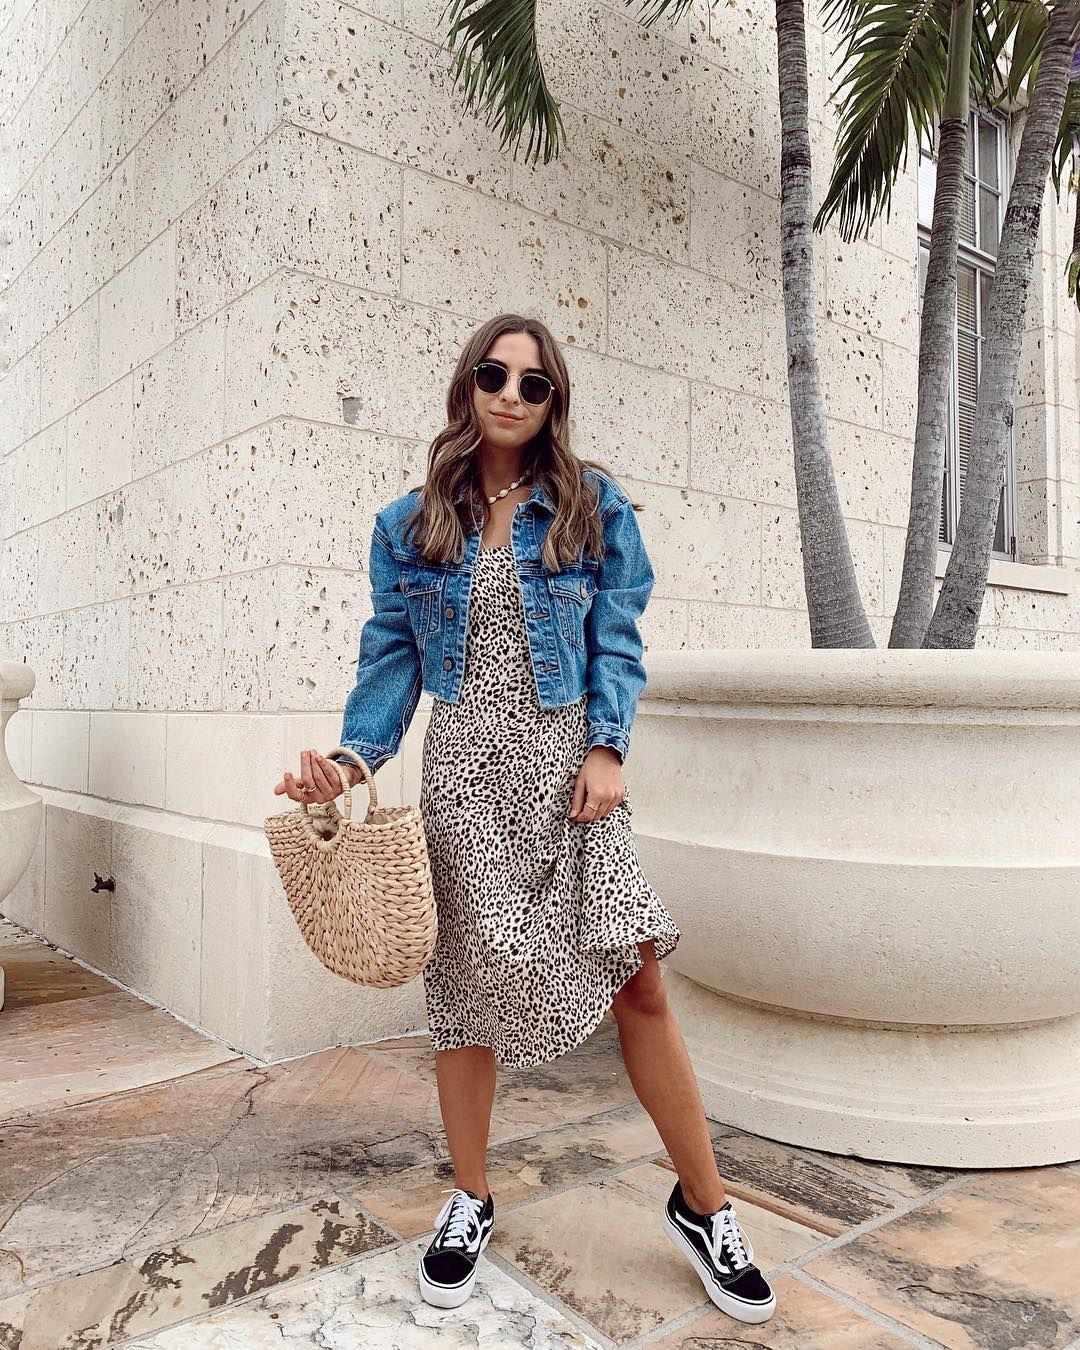 Leopard Midi Dress Outfit For Summer Summerstyle Leoparddress Leopardmididress Strawbag Mididress Dresses With Vans Casual Dress Outfits Midi Dress Outfit [ 1350 x 1080 Pixel ]